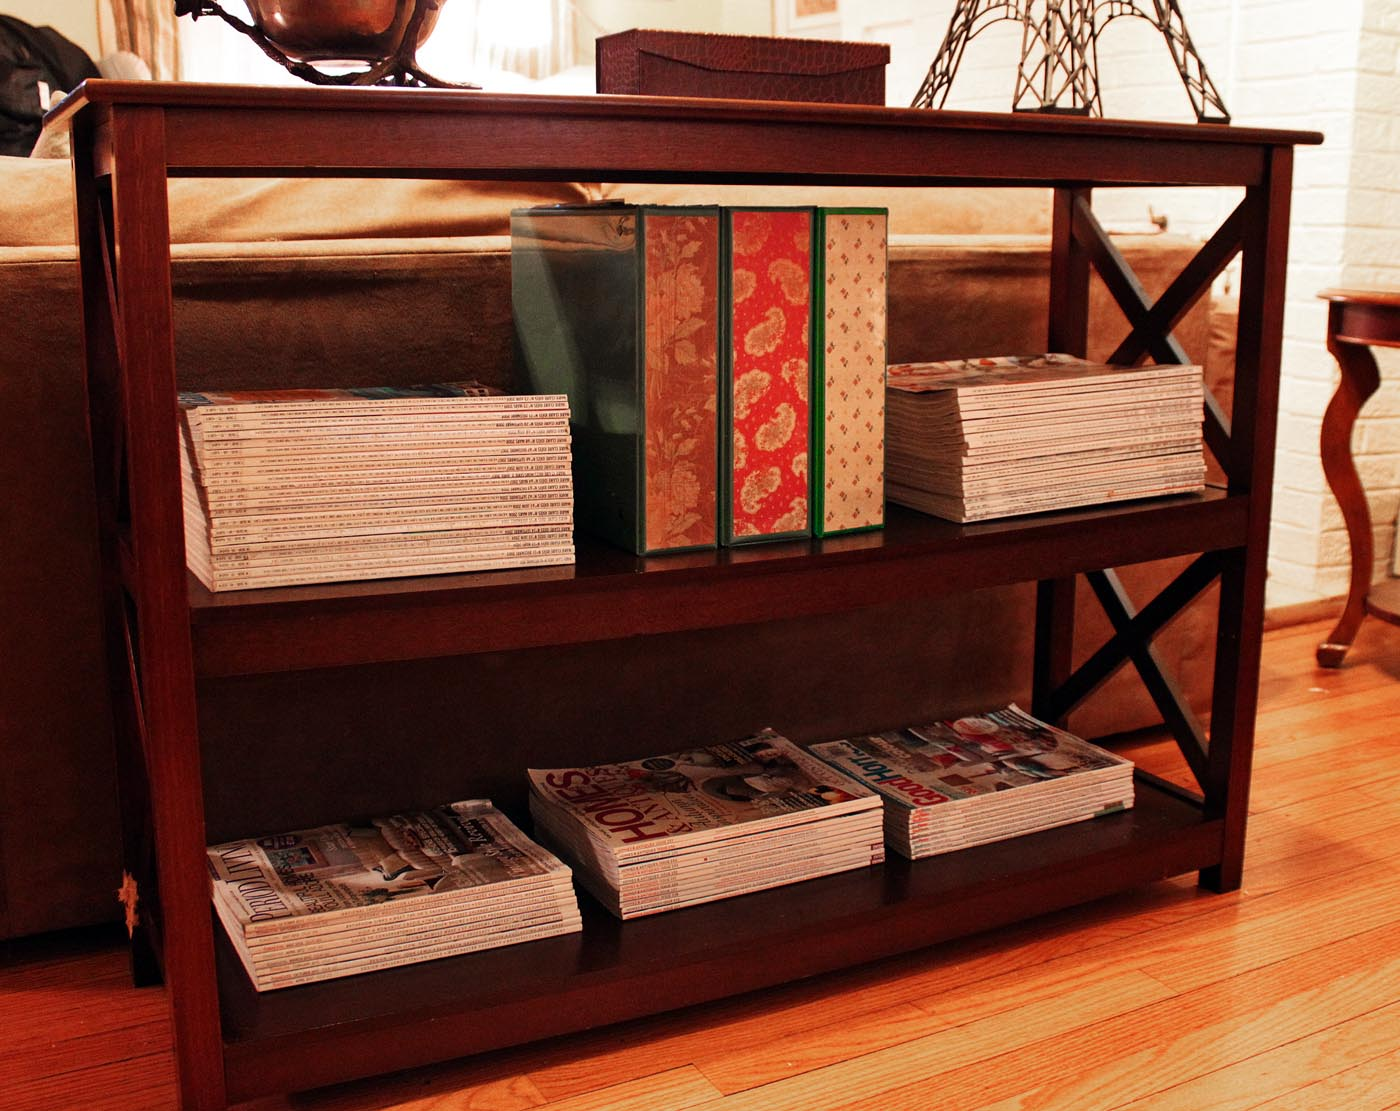 My Great Challenge: Purging magazines and organizing articles